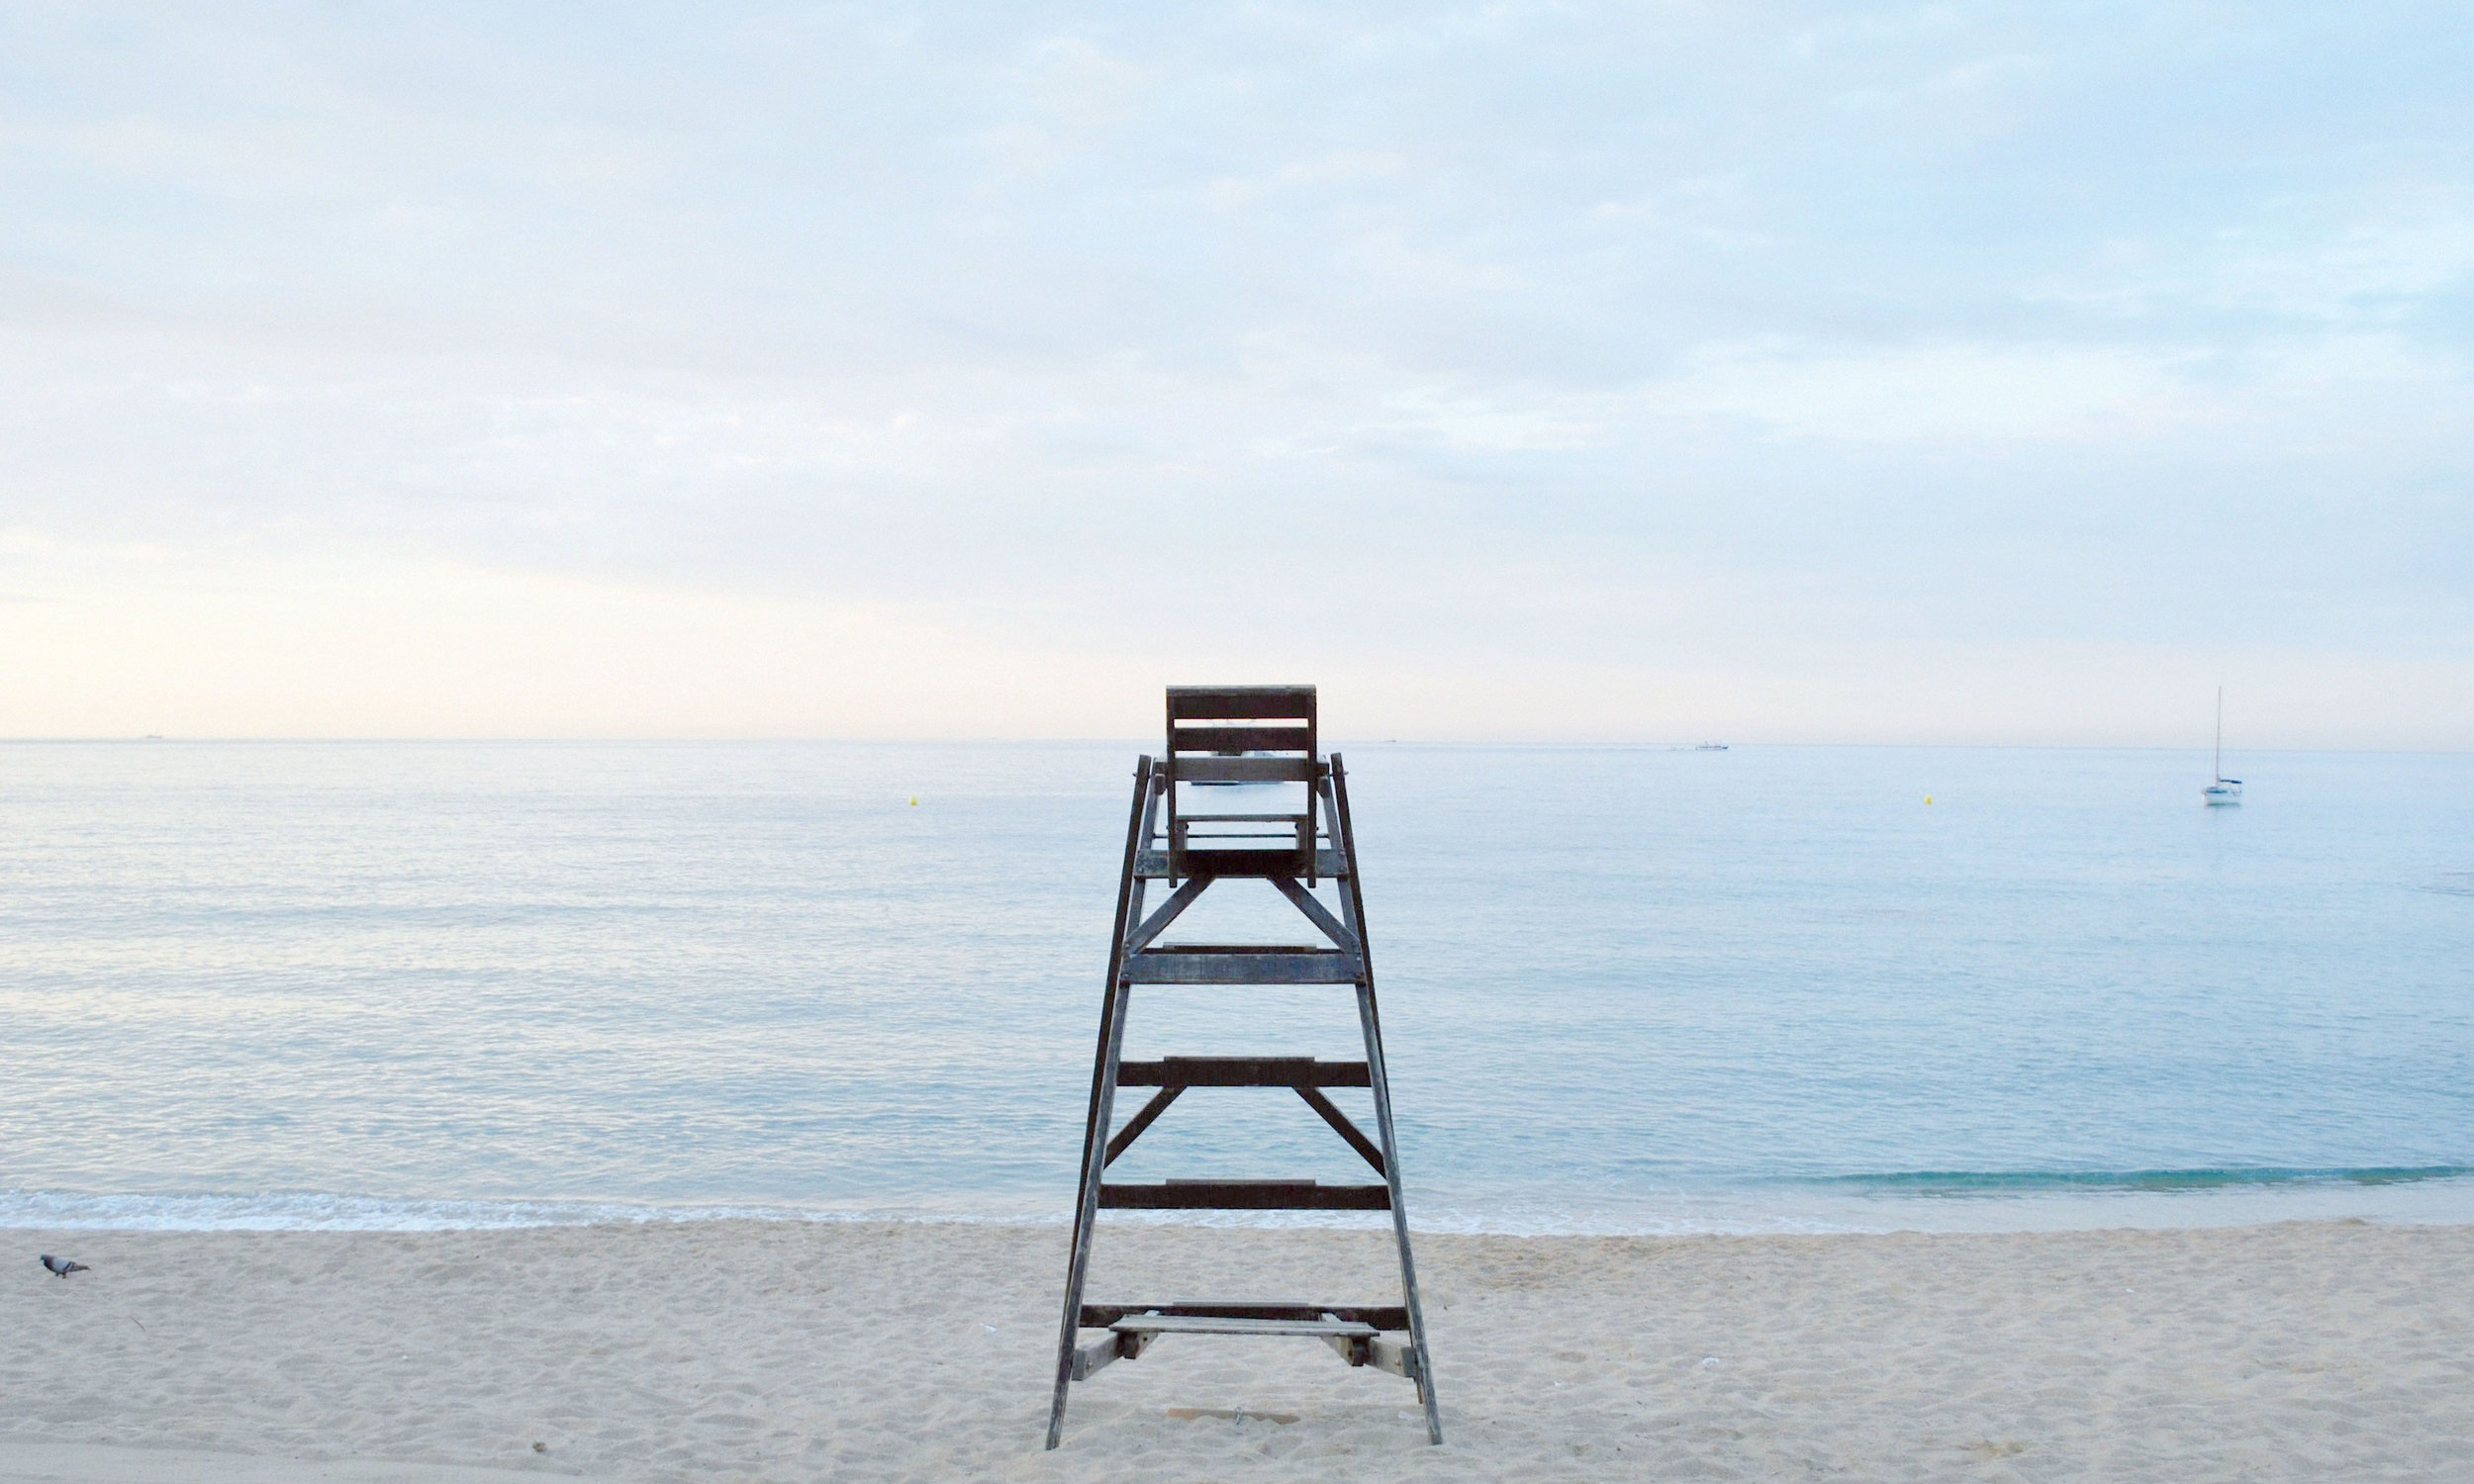 26 Recruitment. beach-chair-coast-131699.jpg